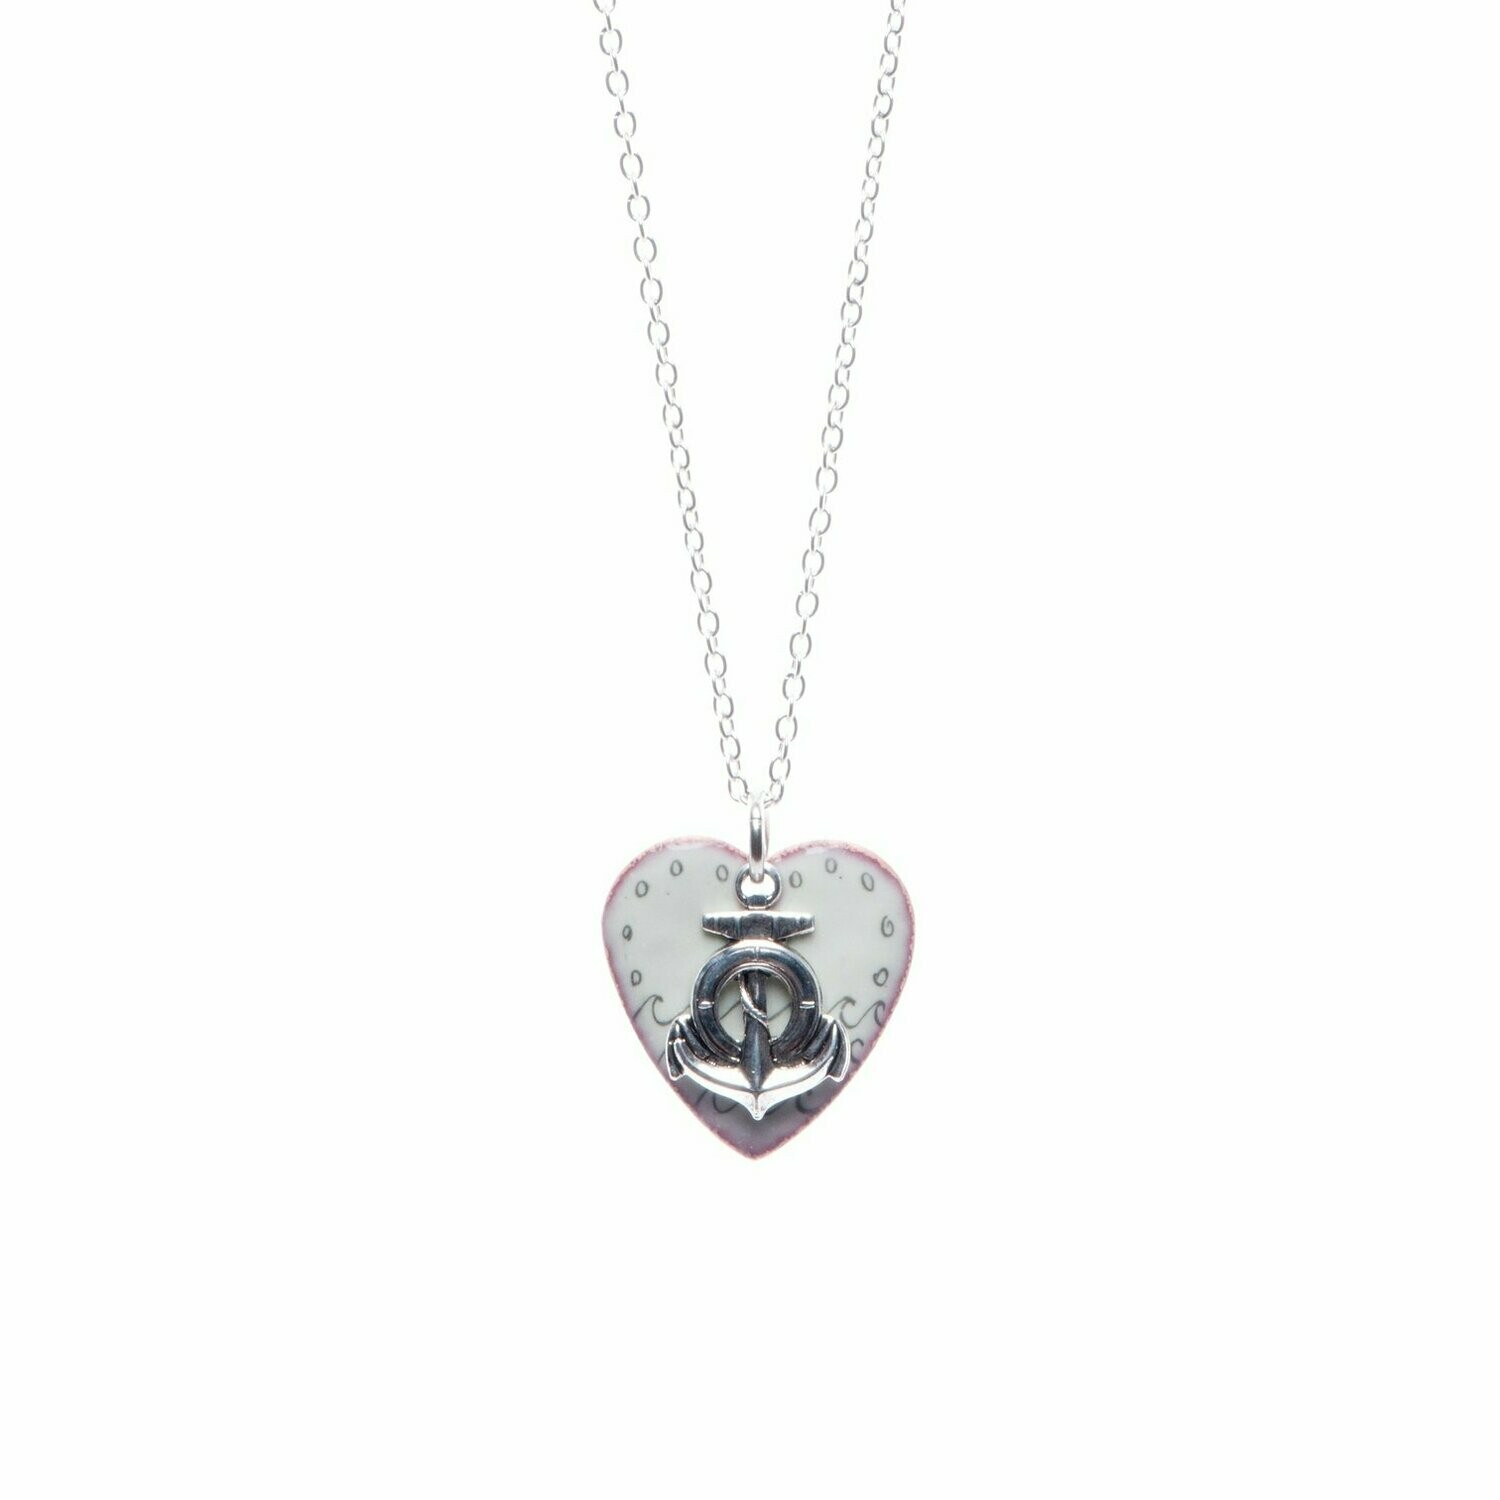 Mint Waves & Anchor Heart Necklace - Aflame